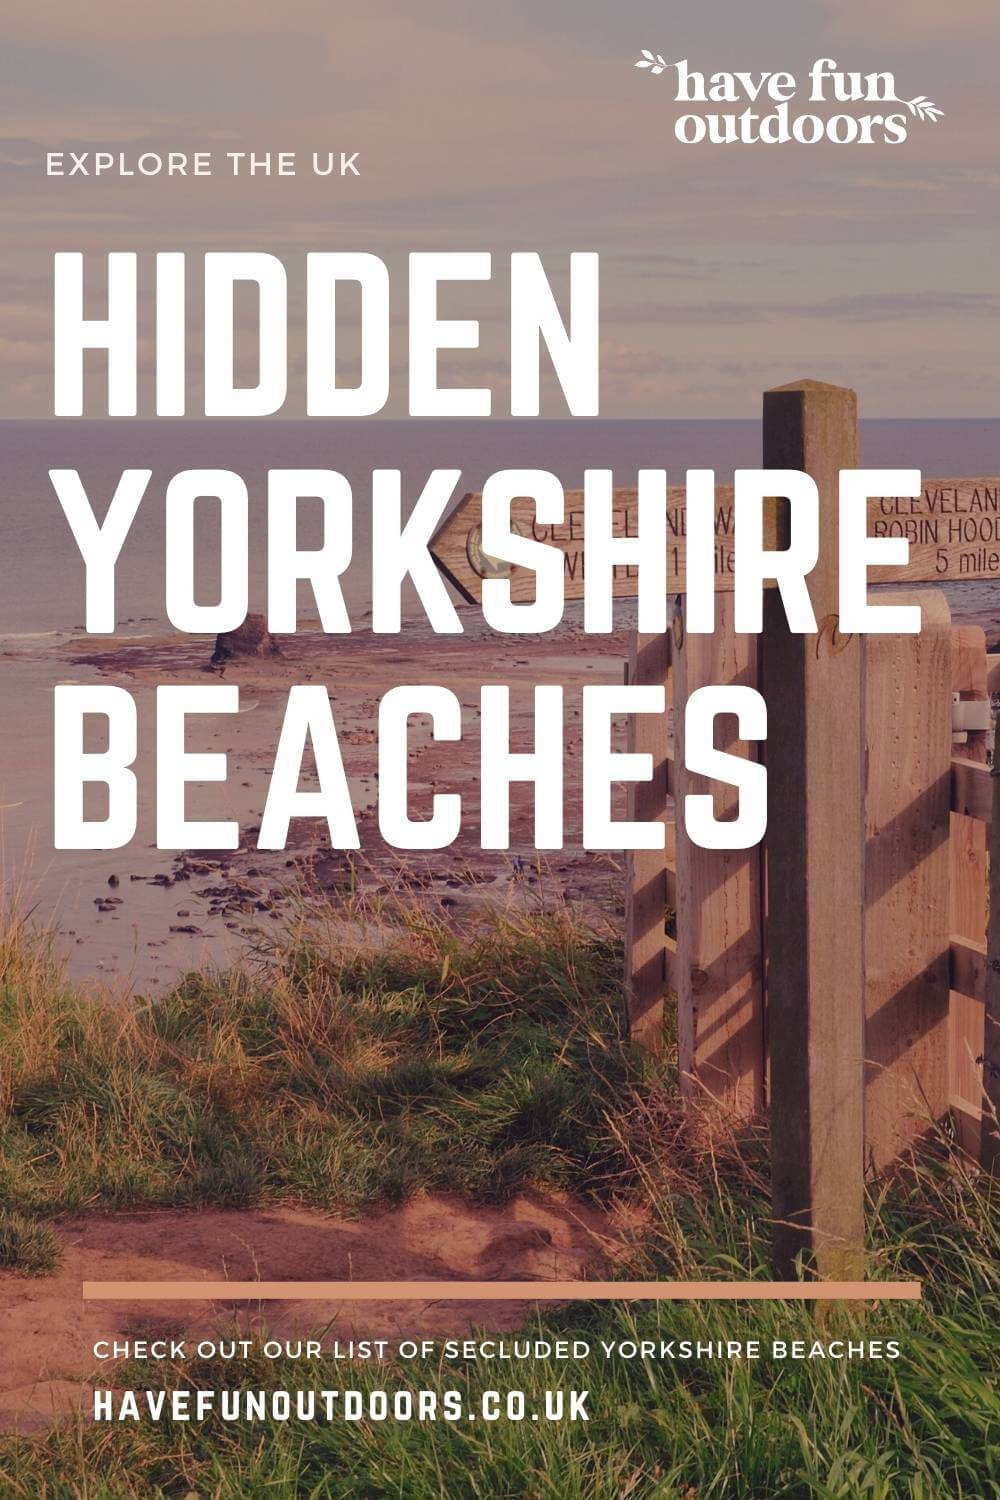 Hidden Beaches In Yorkshire, Secluded Beaches Along the Yorkshire Coast